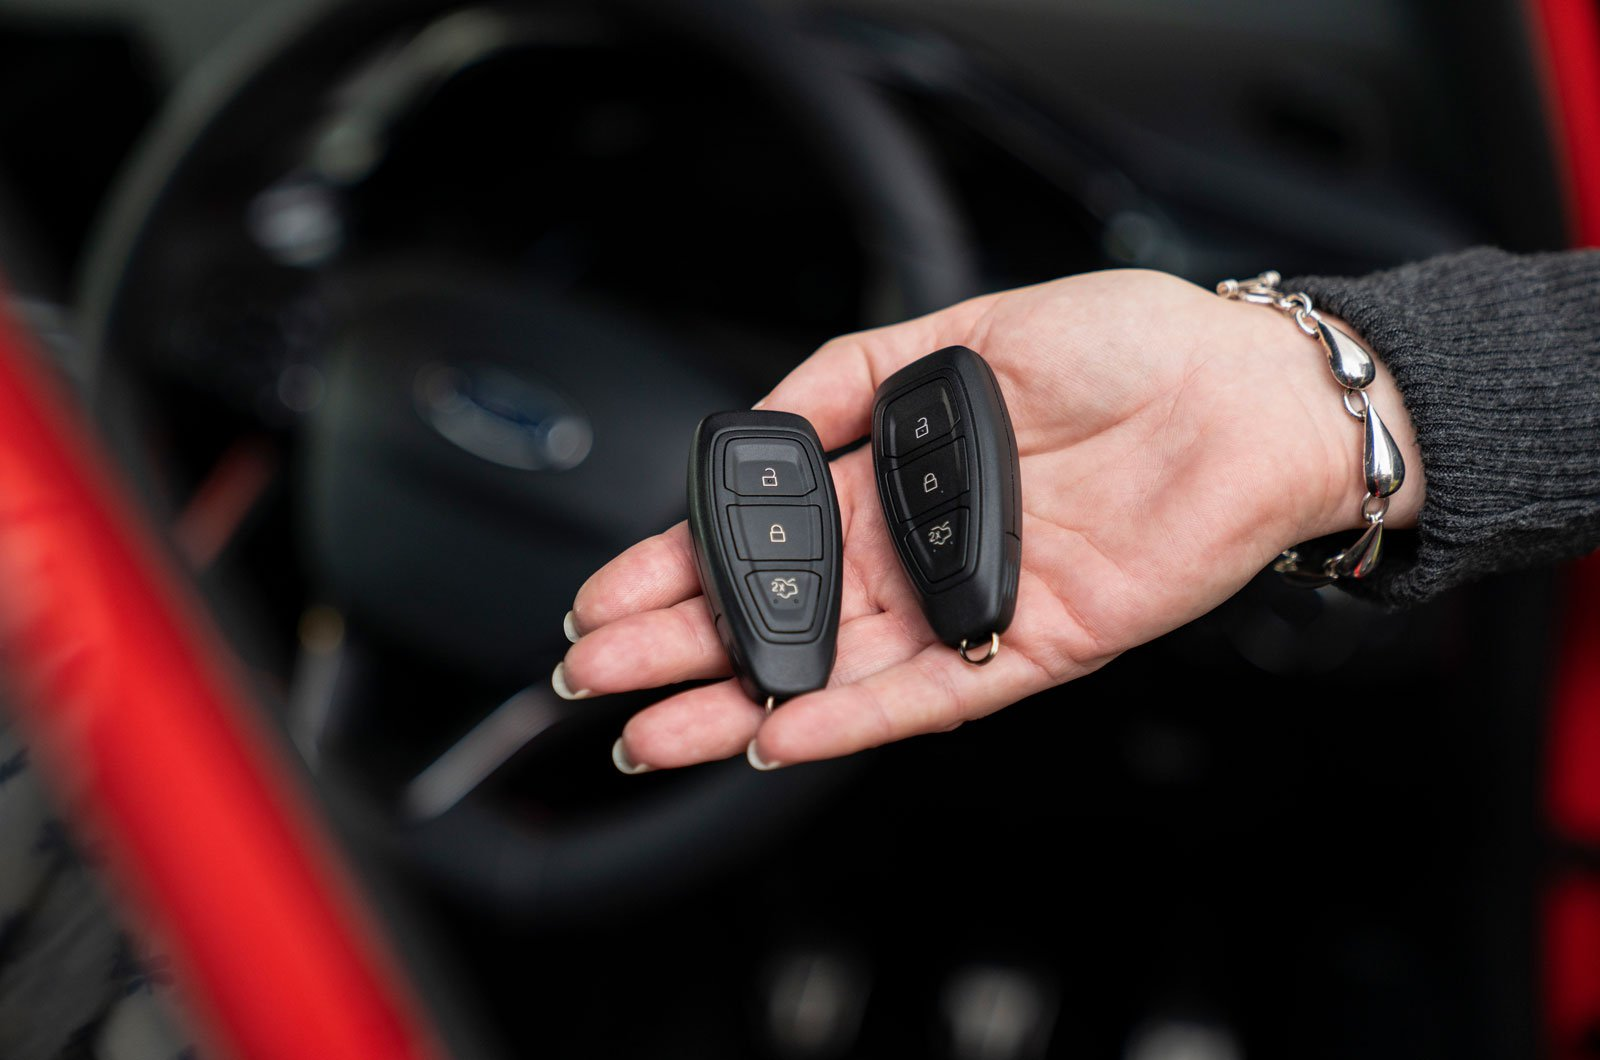 Keyless car crime